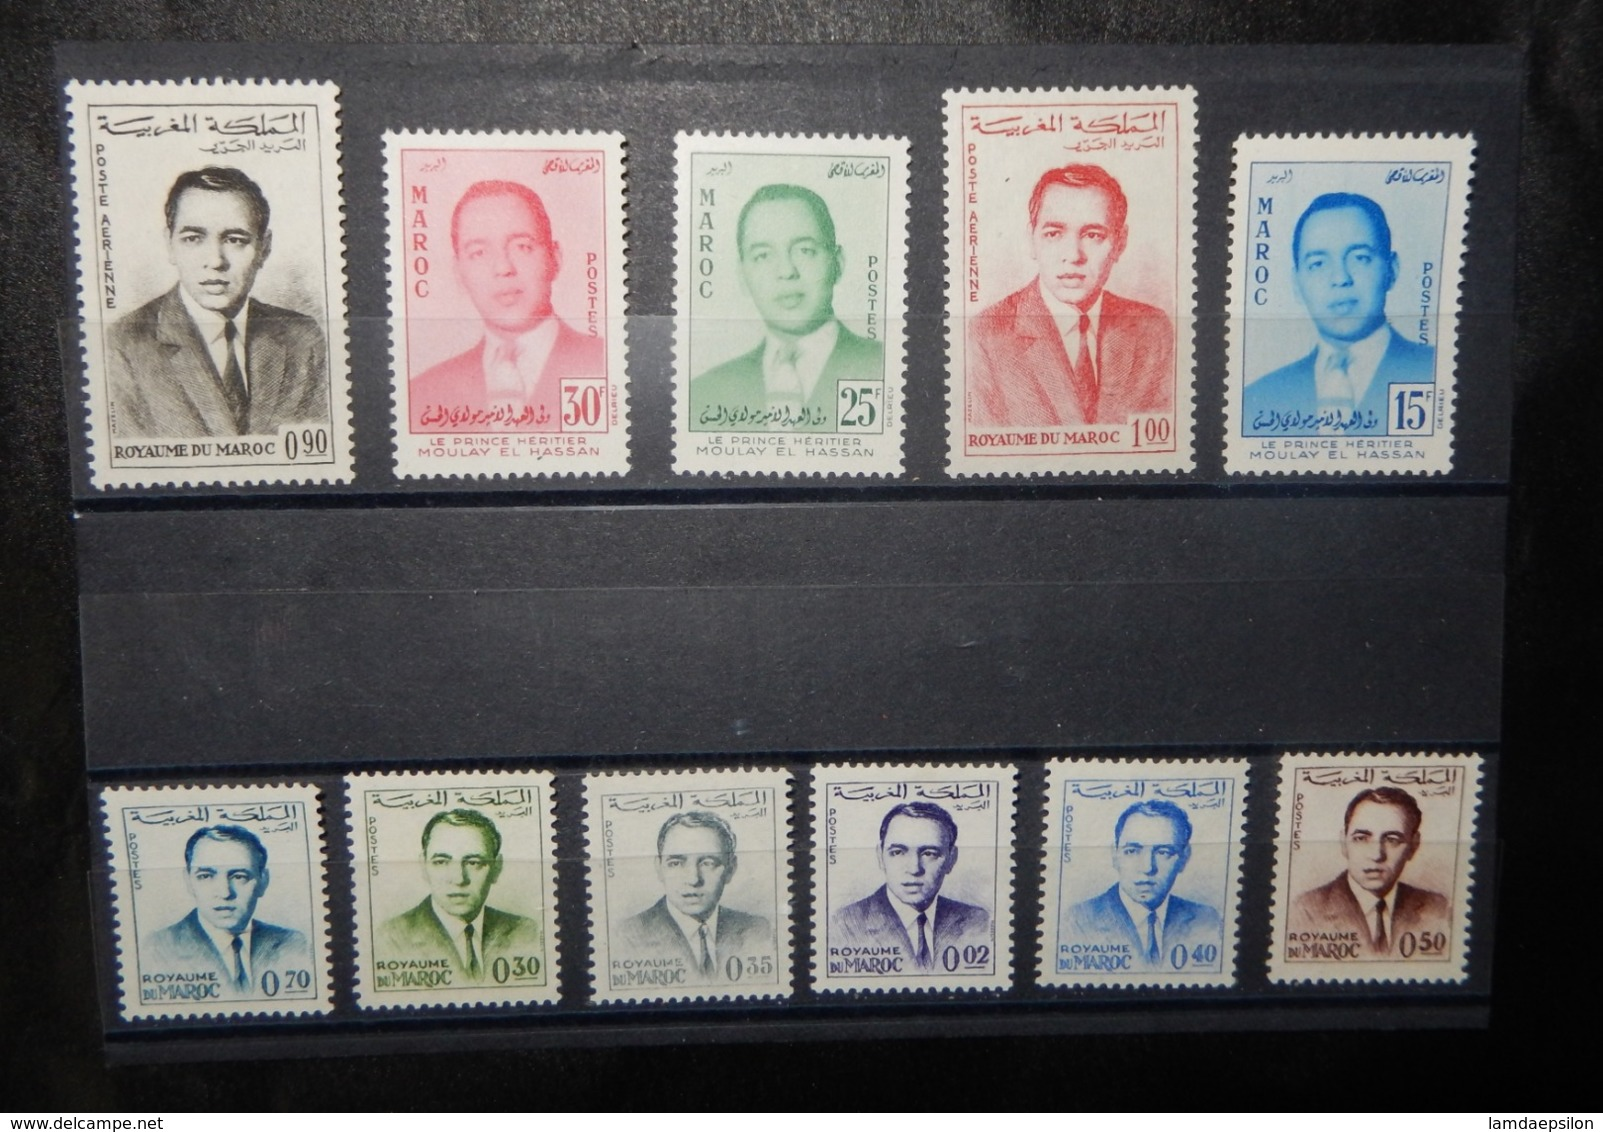 A142 MOROCCO LOT OF 11 DIFFERENT STAMPS - Morocco (1956-...)